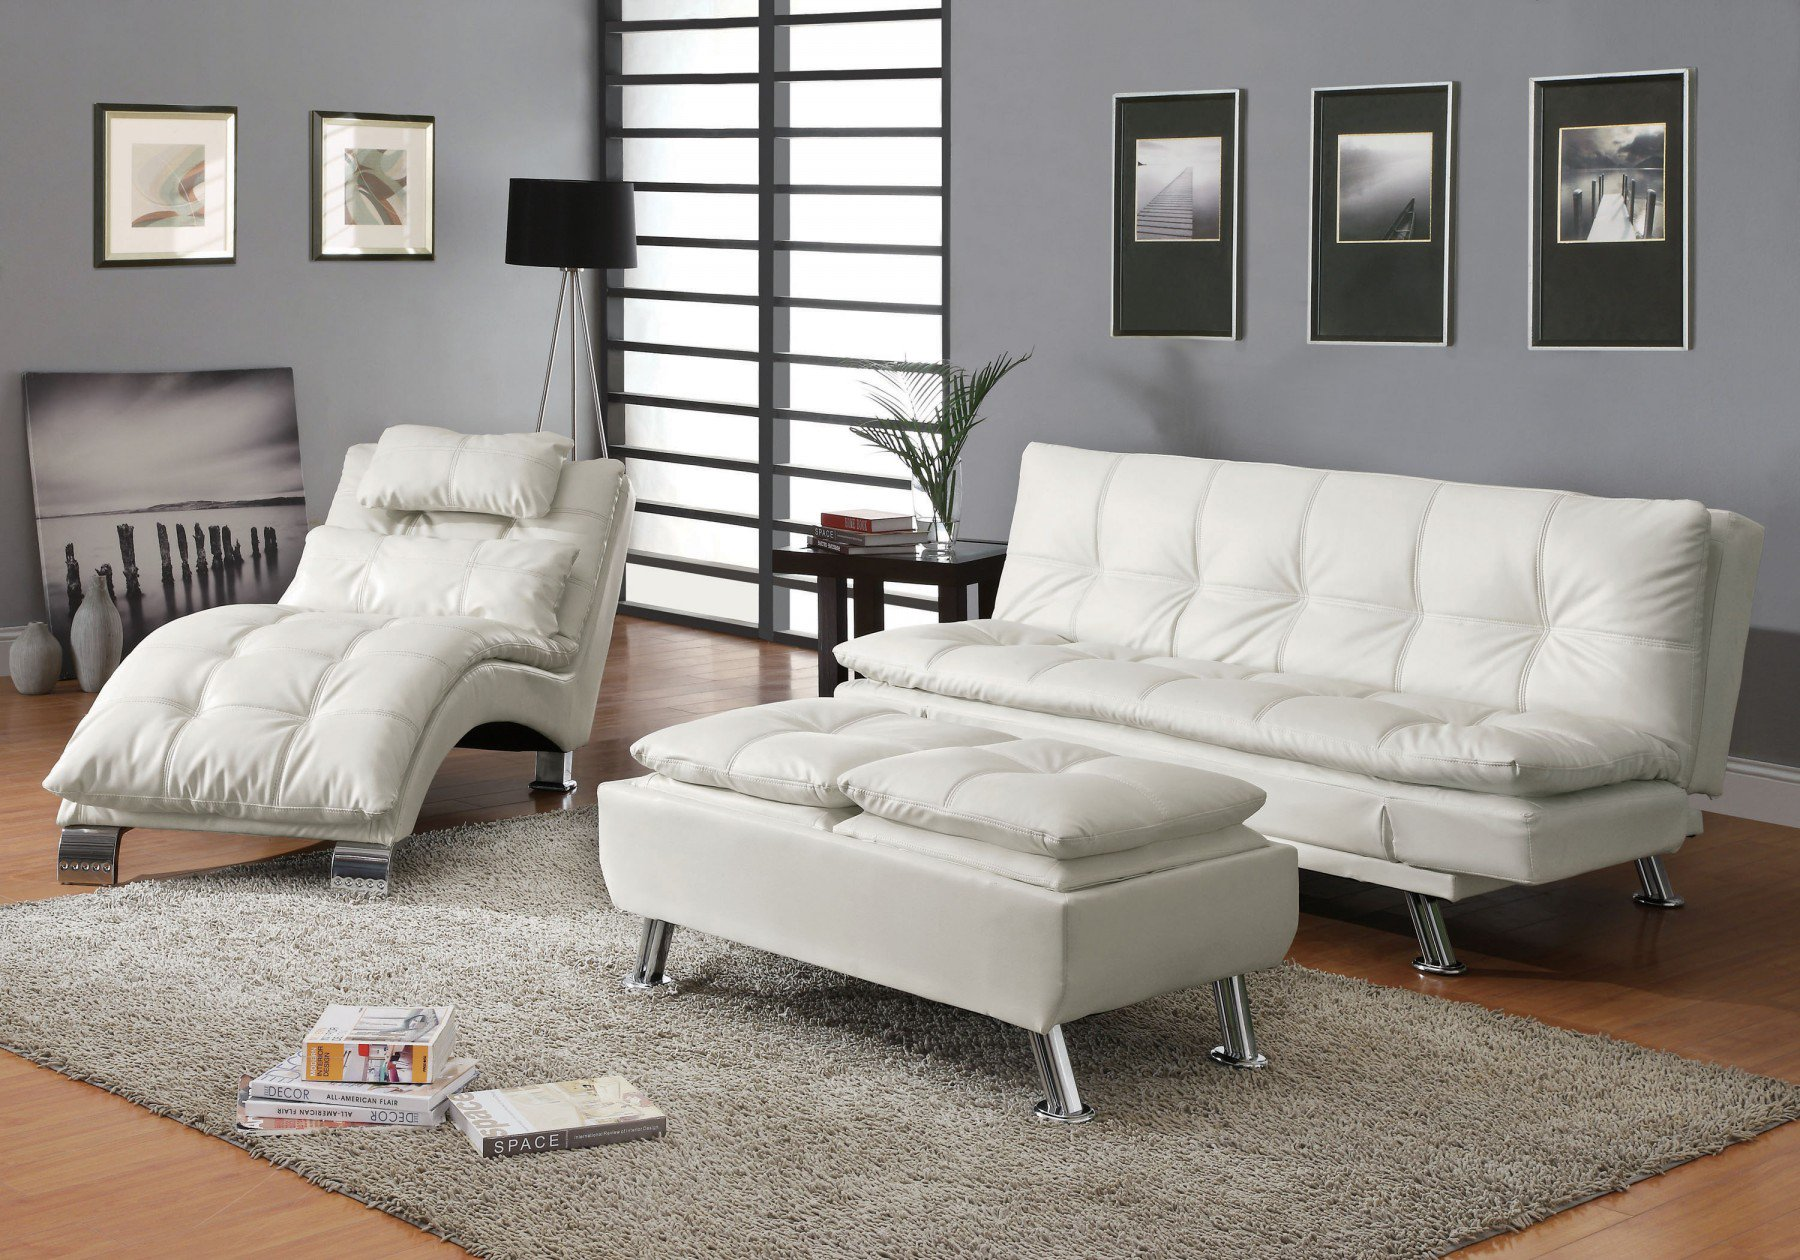 Superieur Simple Relax 1PerfectChoice 3 Pieces Dilleston White Futon Sleeper Sofa Bed  Set